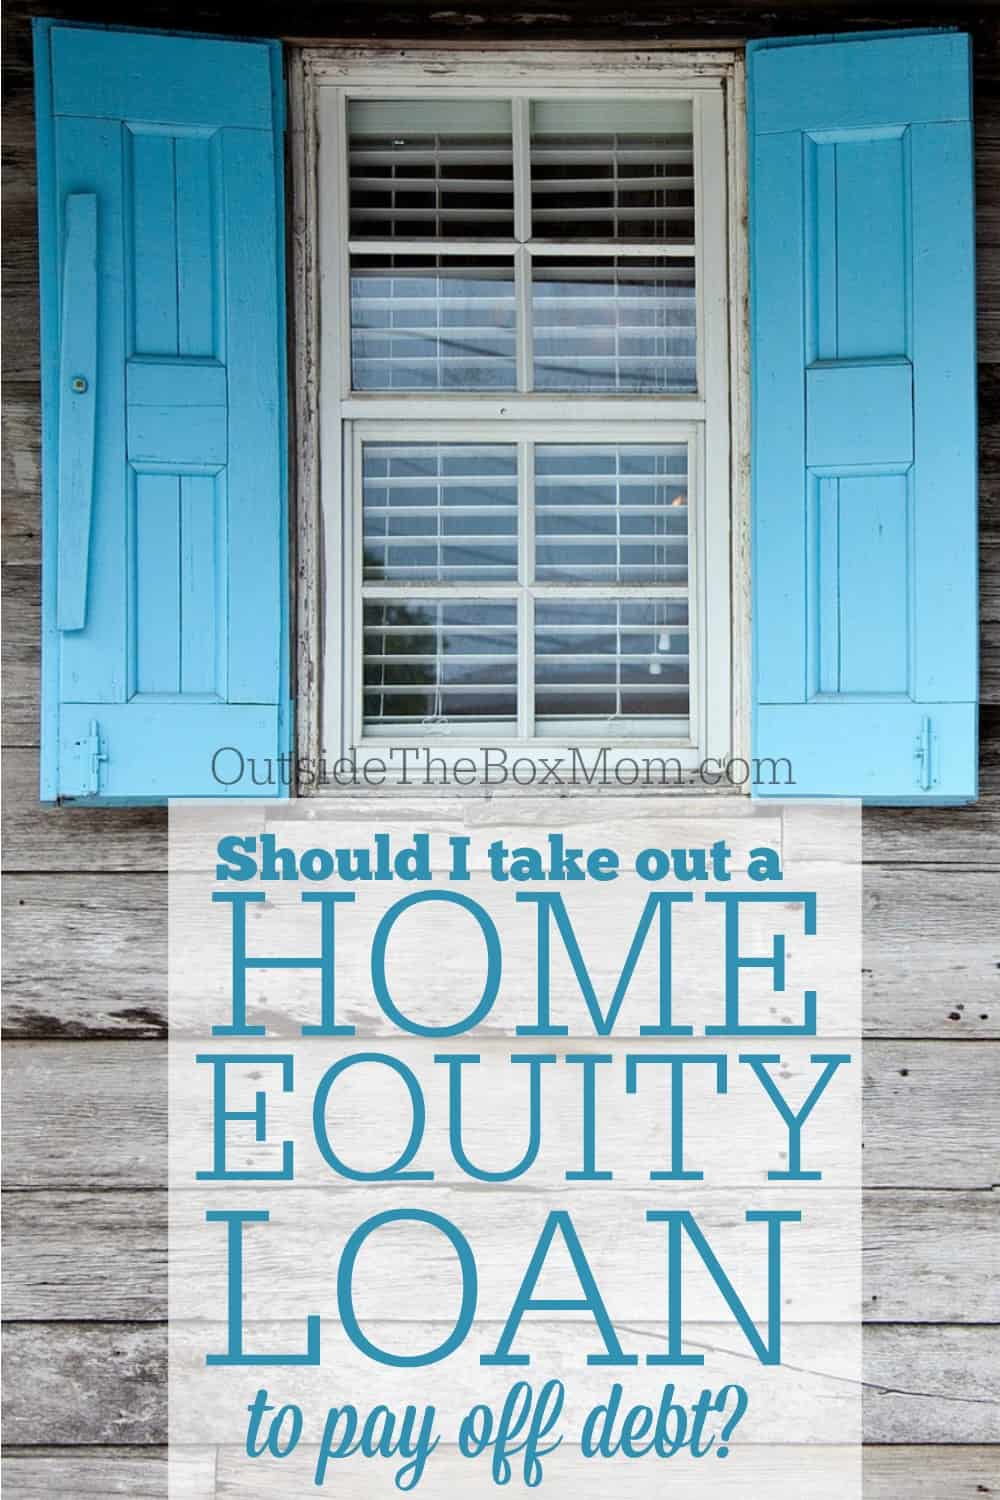 Home Equity Loan Debt Consolidation Good Idea Home Ideas